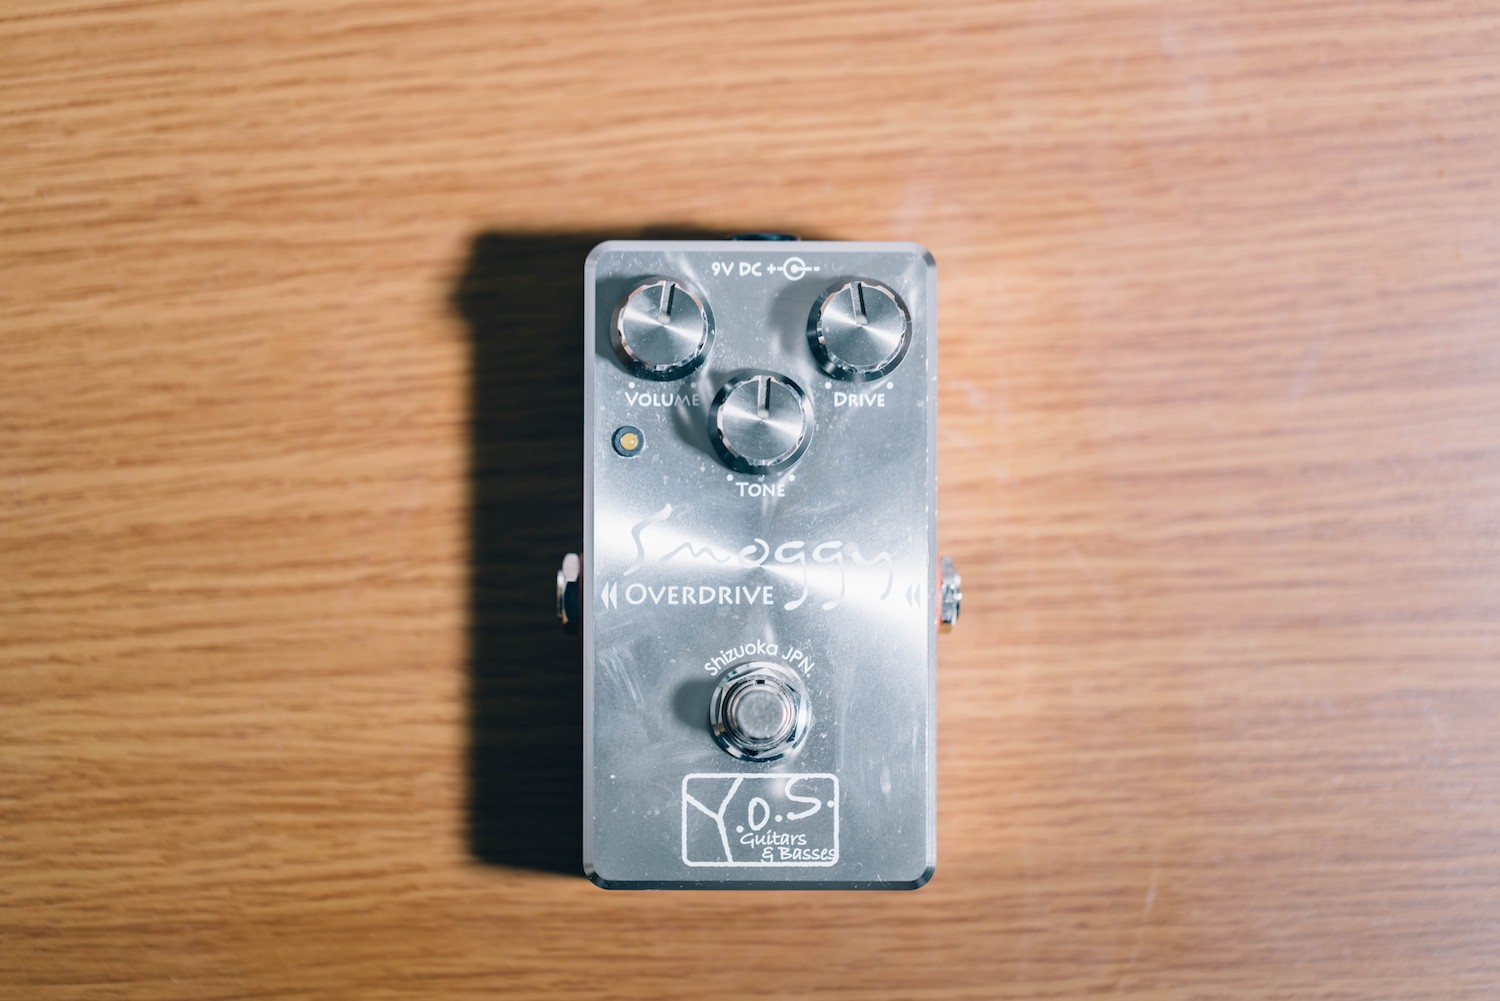 Smoggy overdrive 1